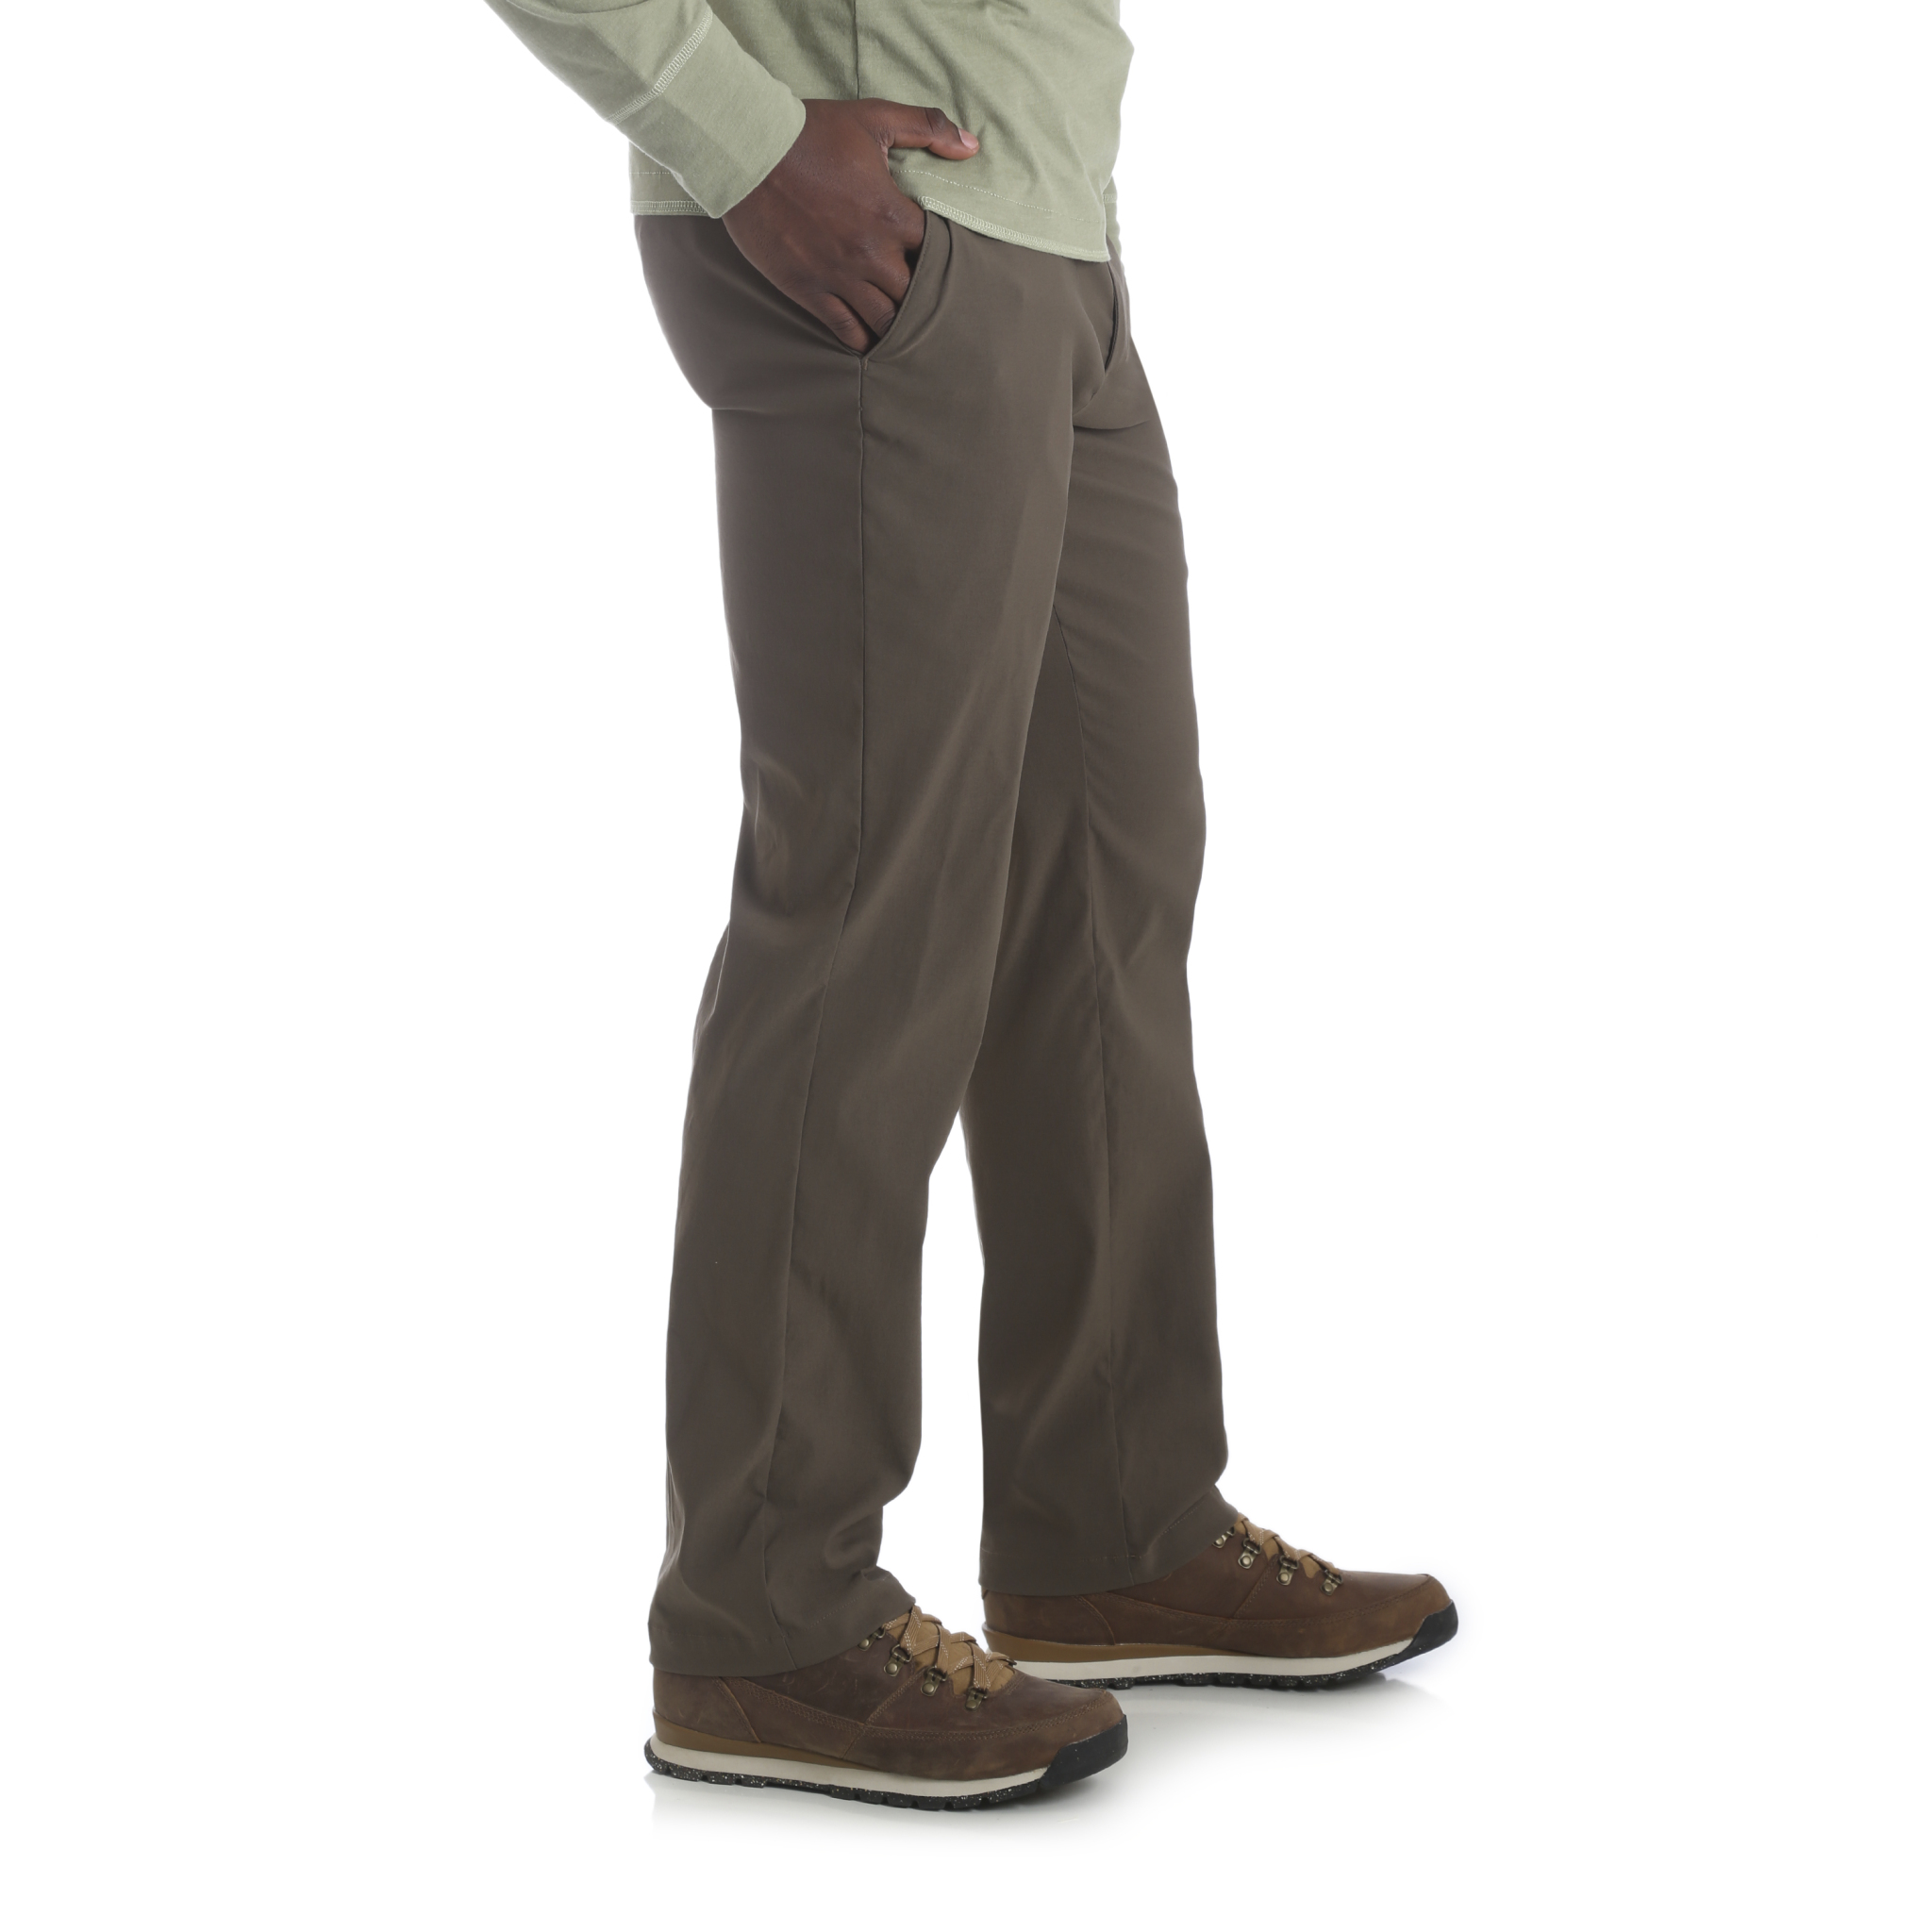 Wrangler-Neuf-Solide-Homme-Performance-Series-Outdoor-Confort-Coupe-Droite-Pantalon miniature 10